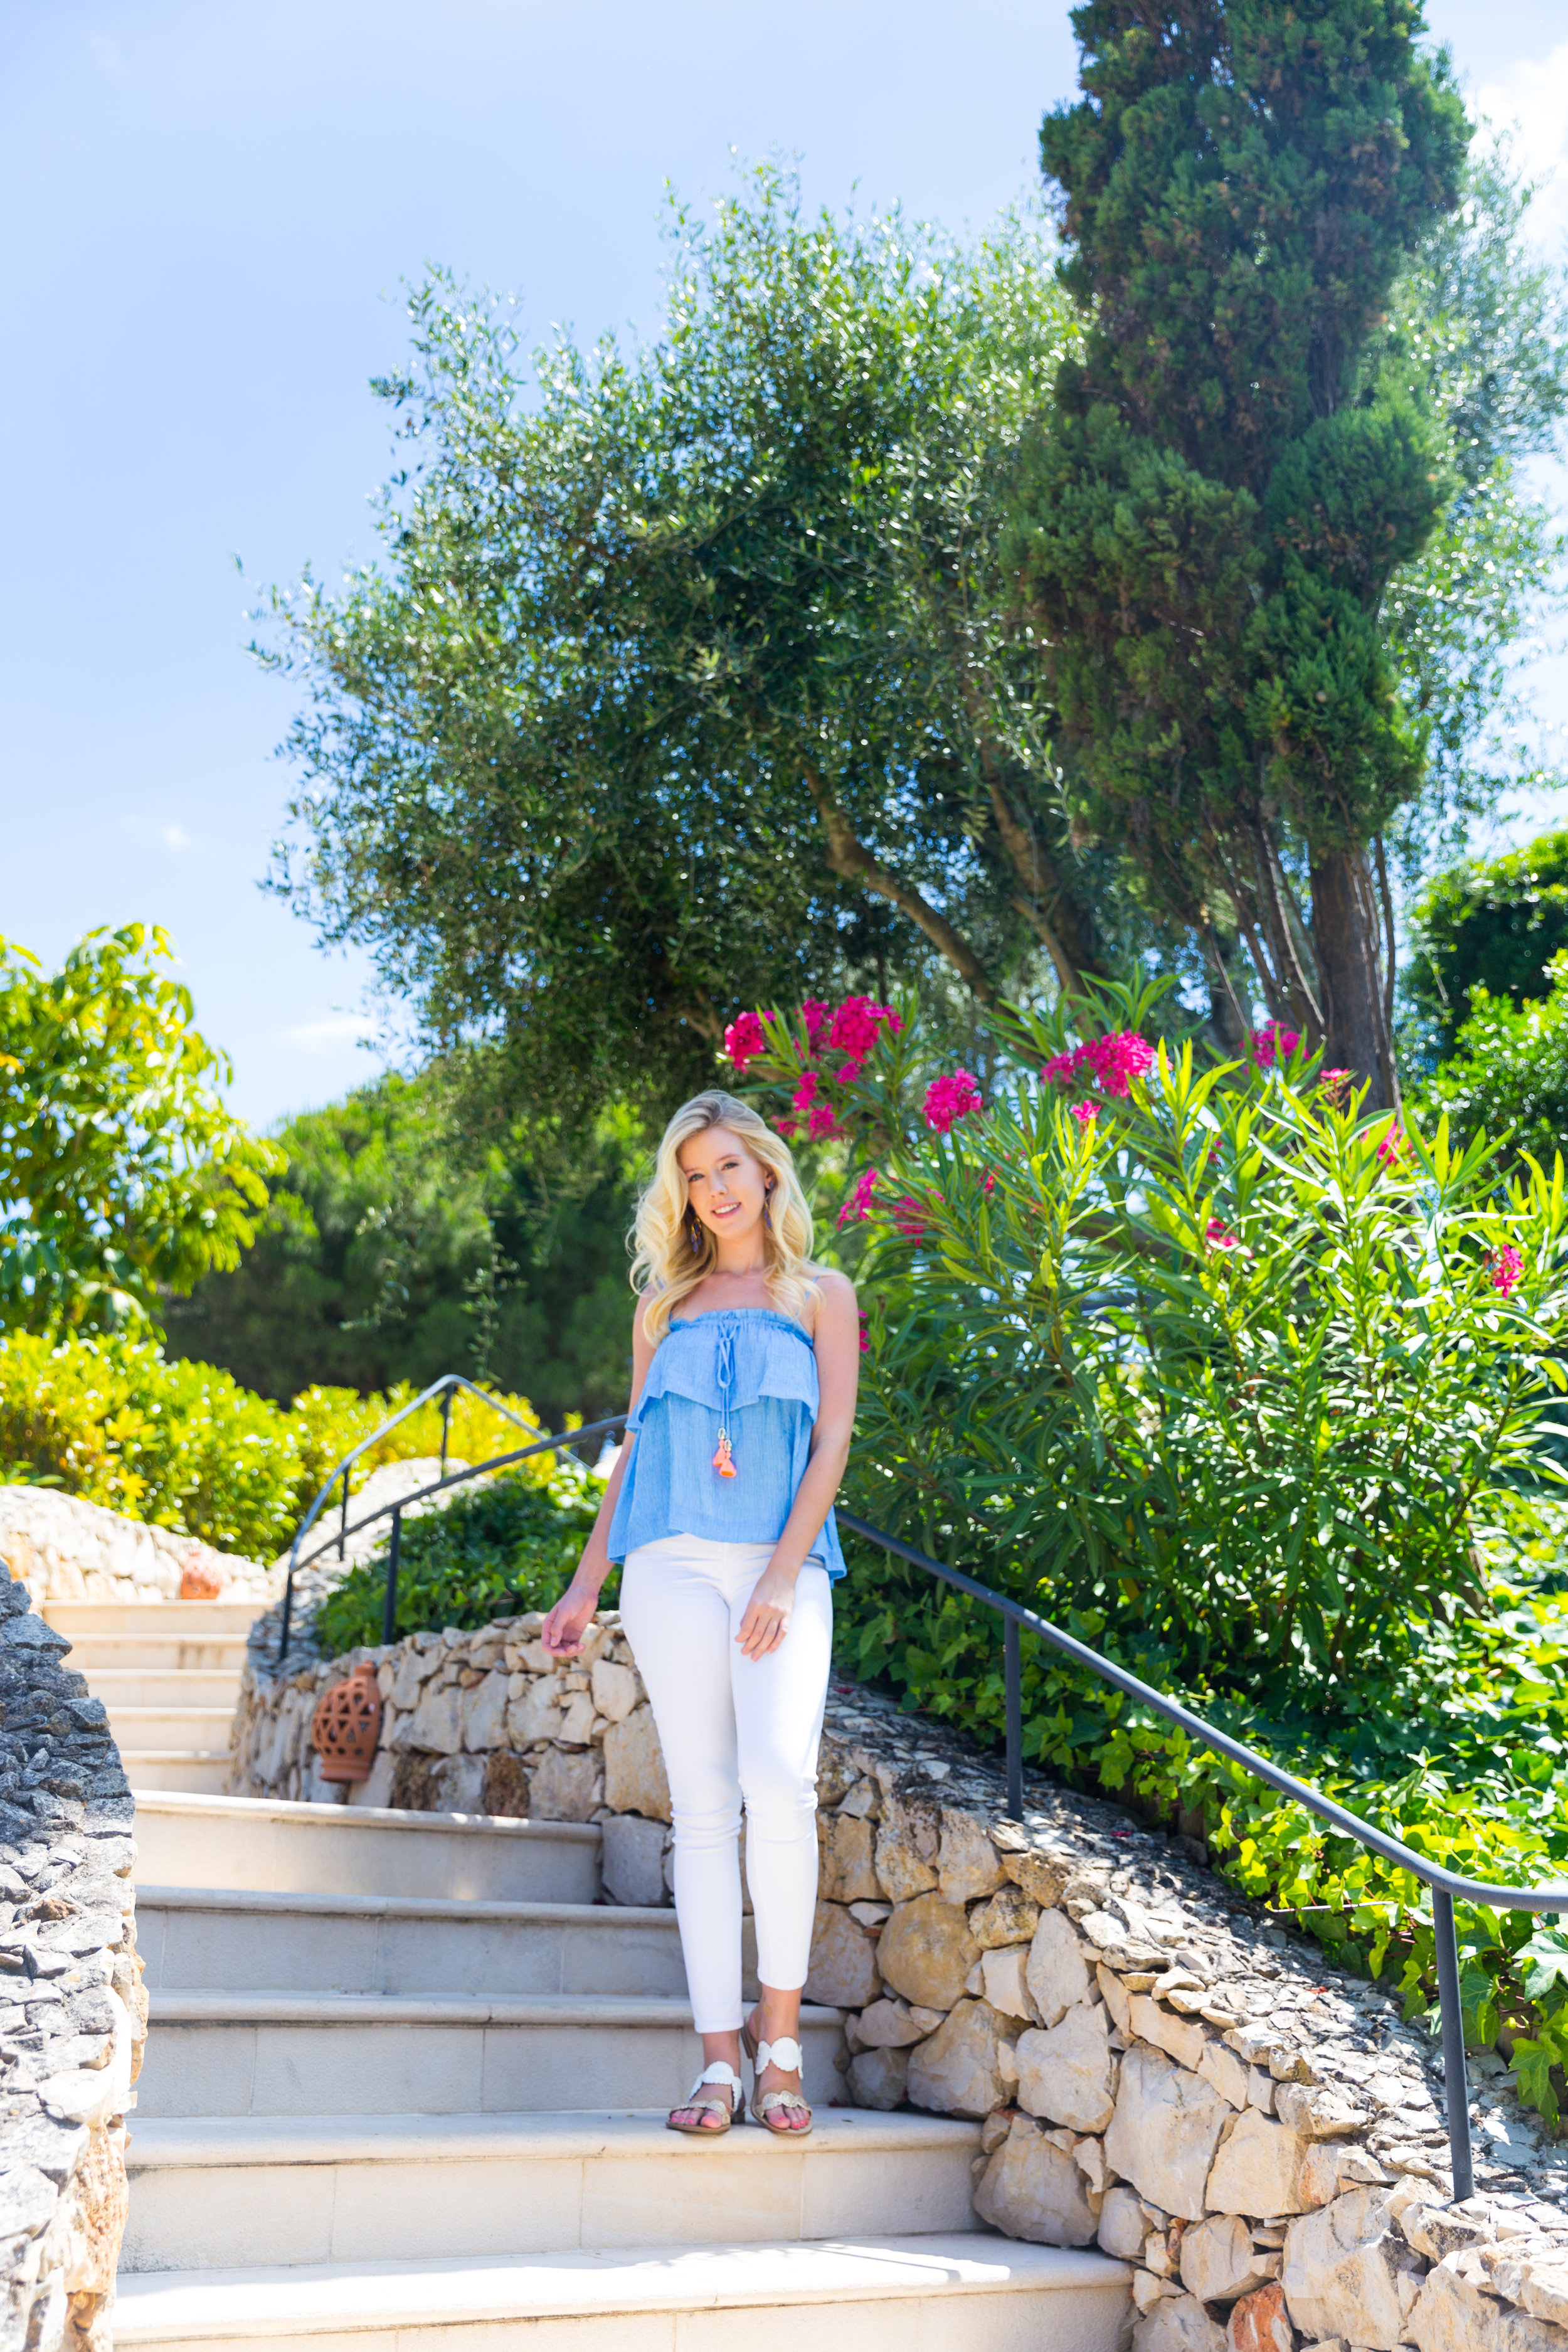 Portugal Algarve Summer Fashion Lilly Pulitzer Top White Jeans.jpg